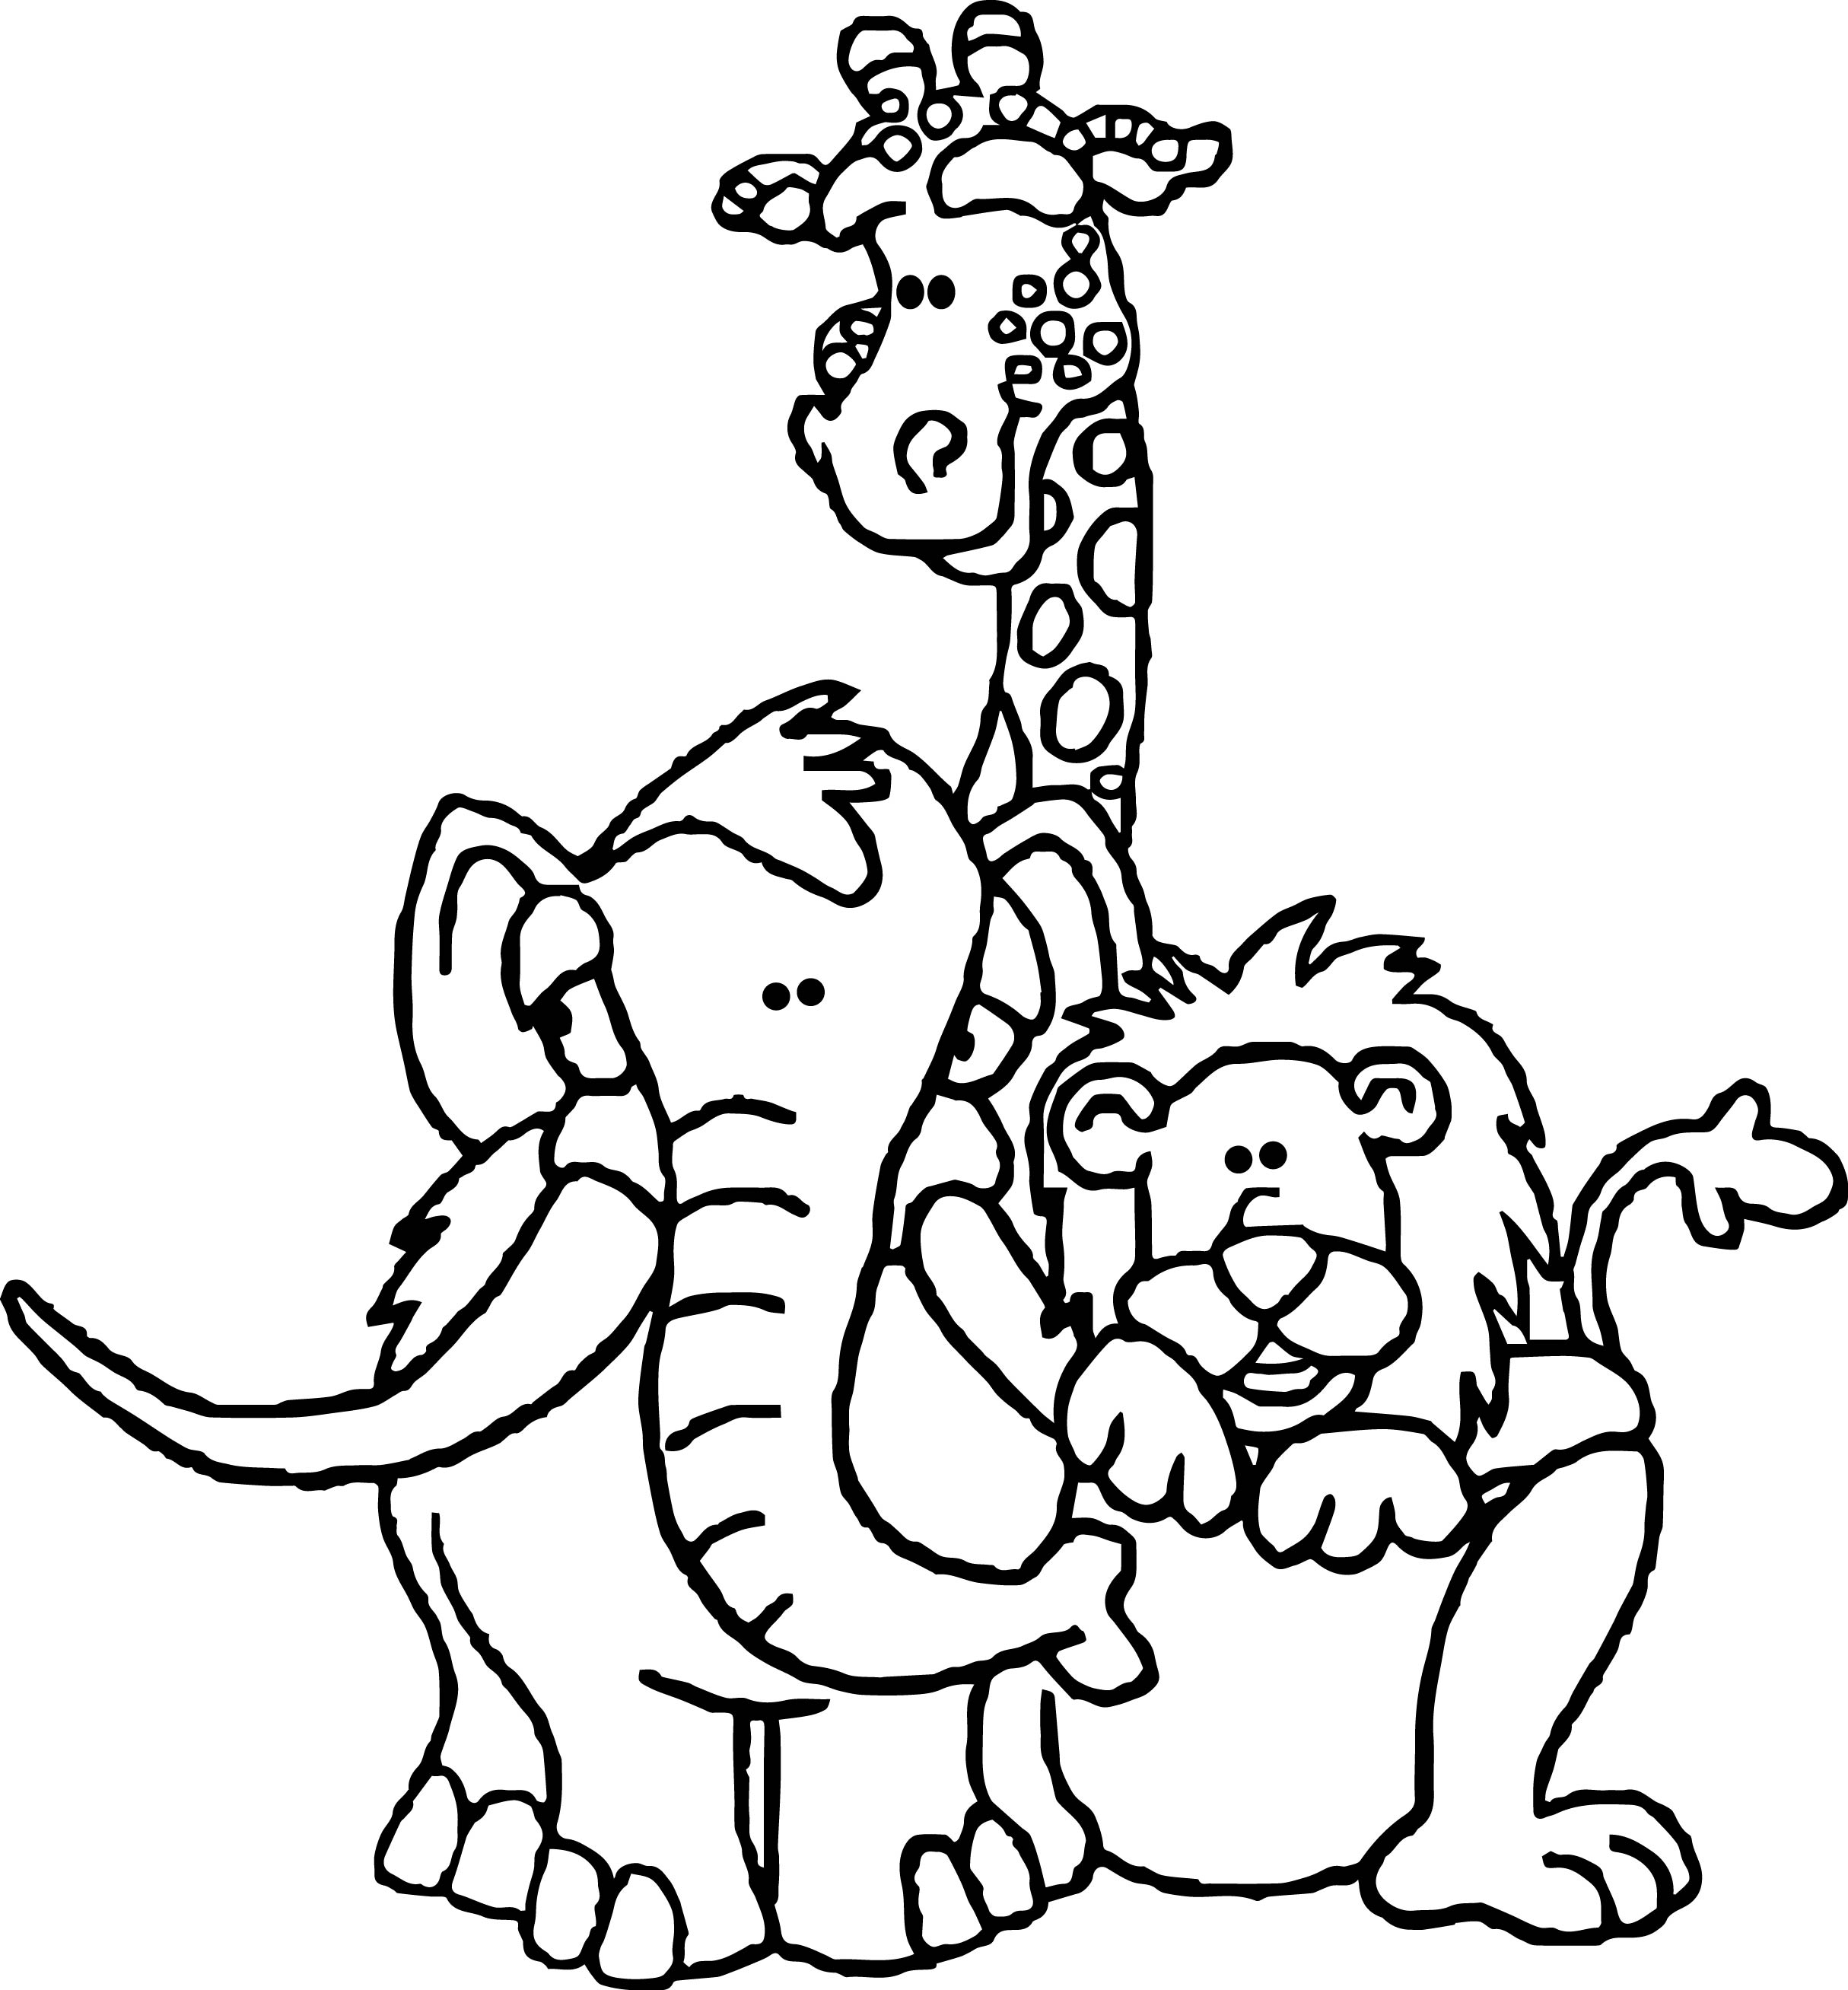 Animals clipart coloring pages banner royalty free download Coloring Pages: Coloring Book Three Zoo Animalloring Owl And March ... banner royalty free download